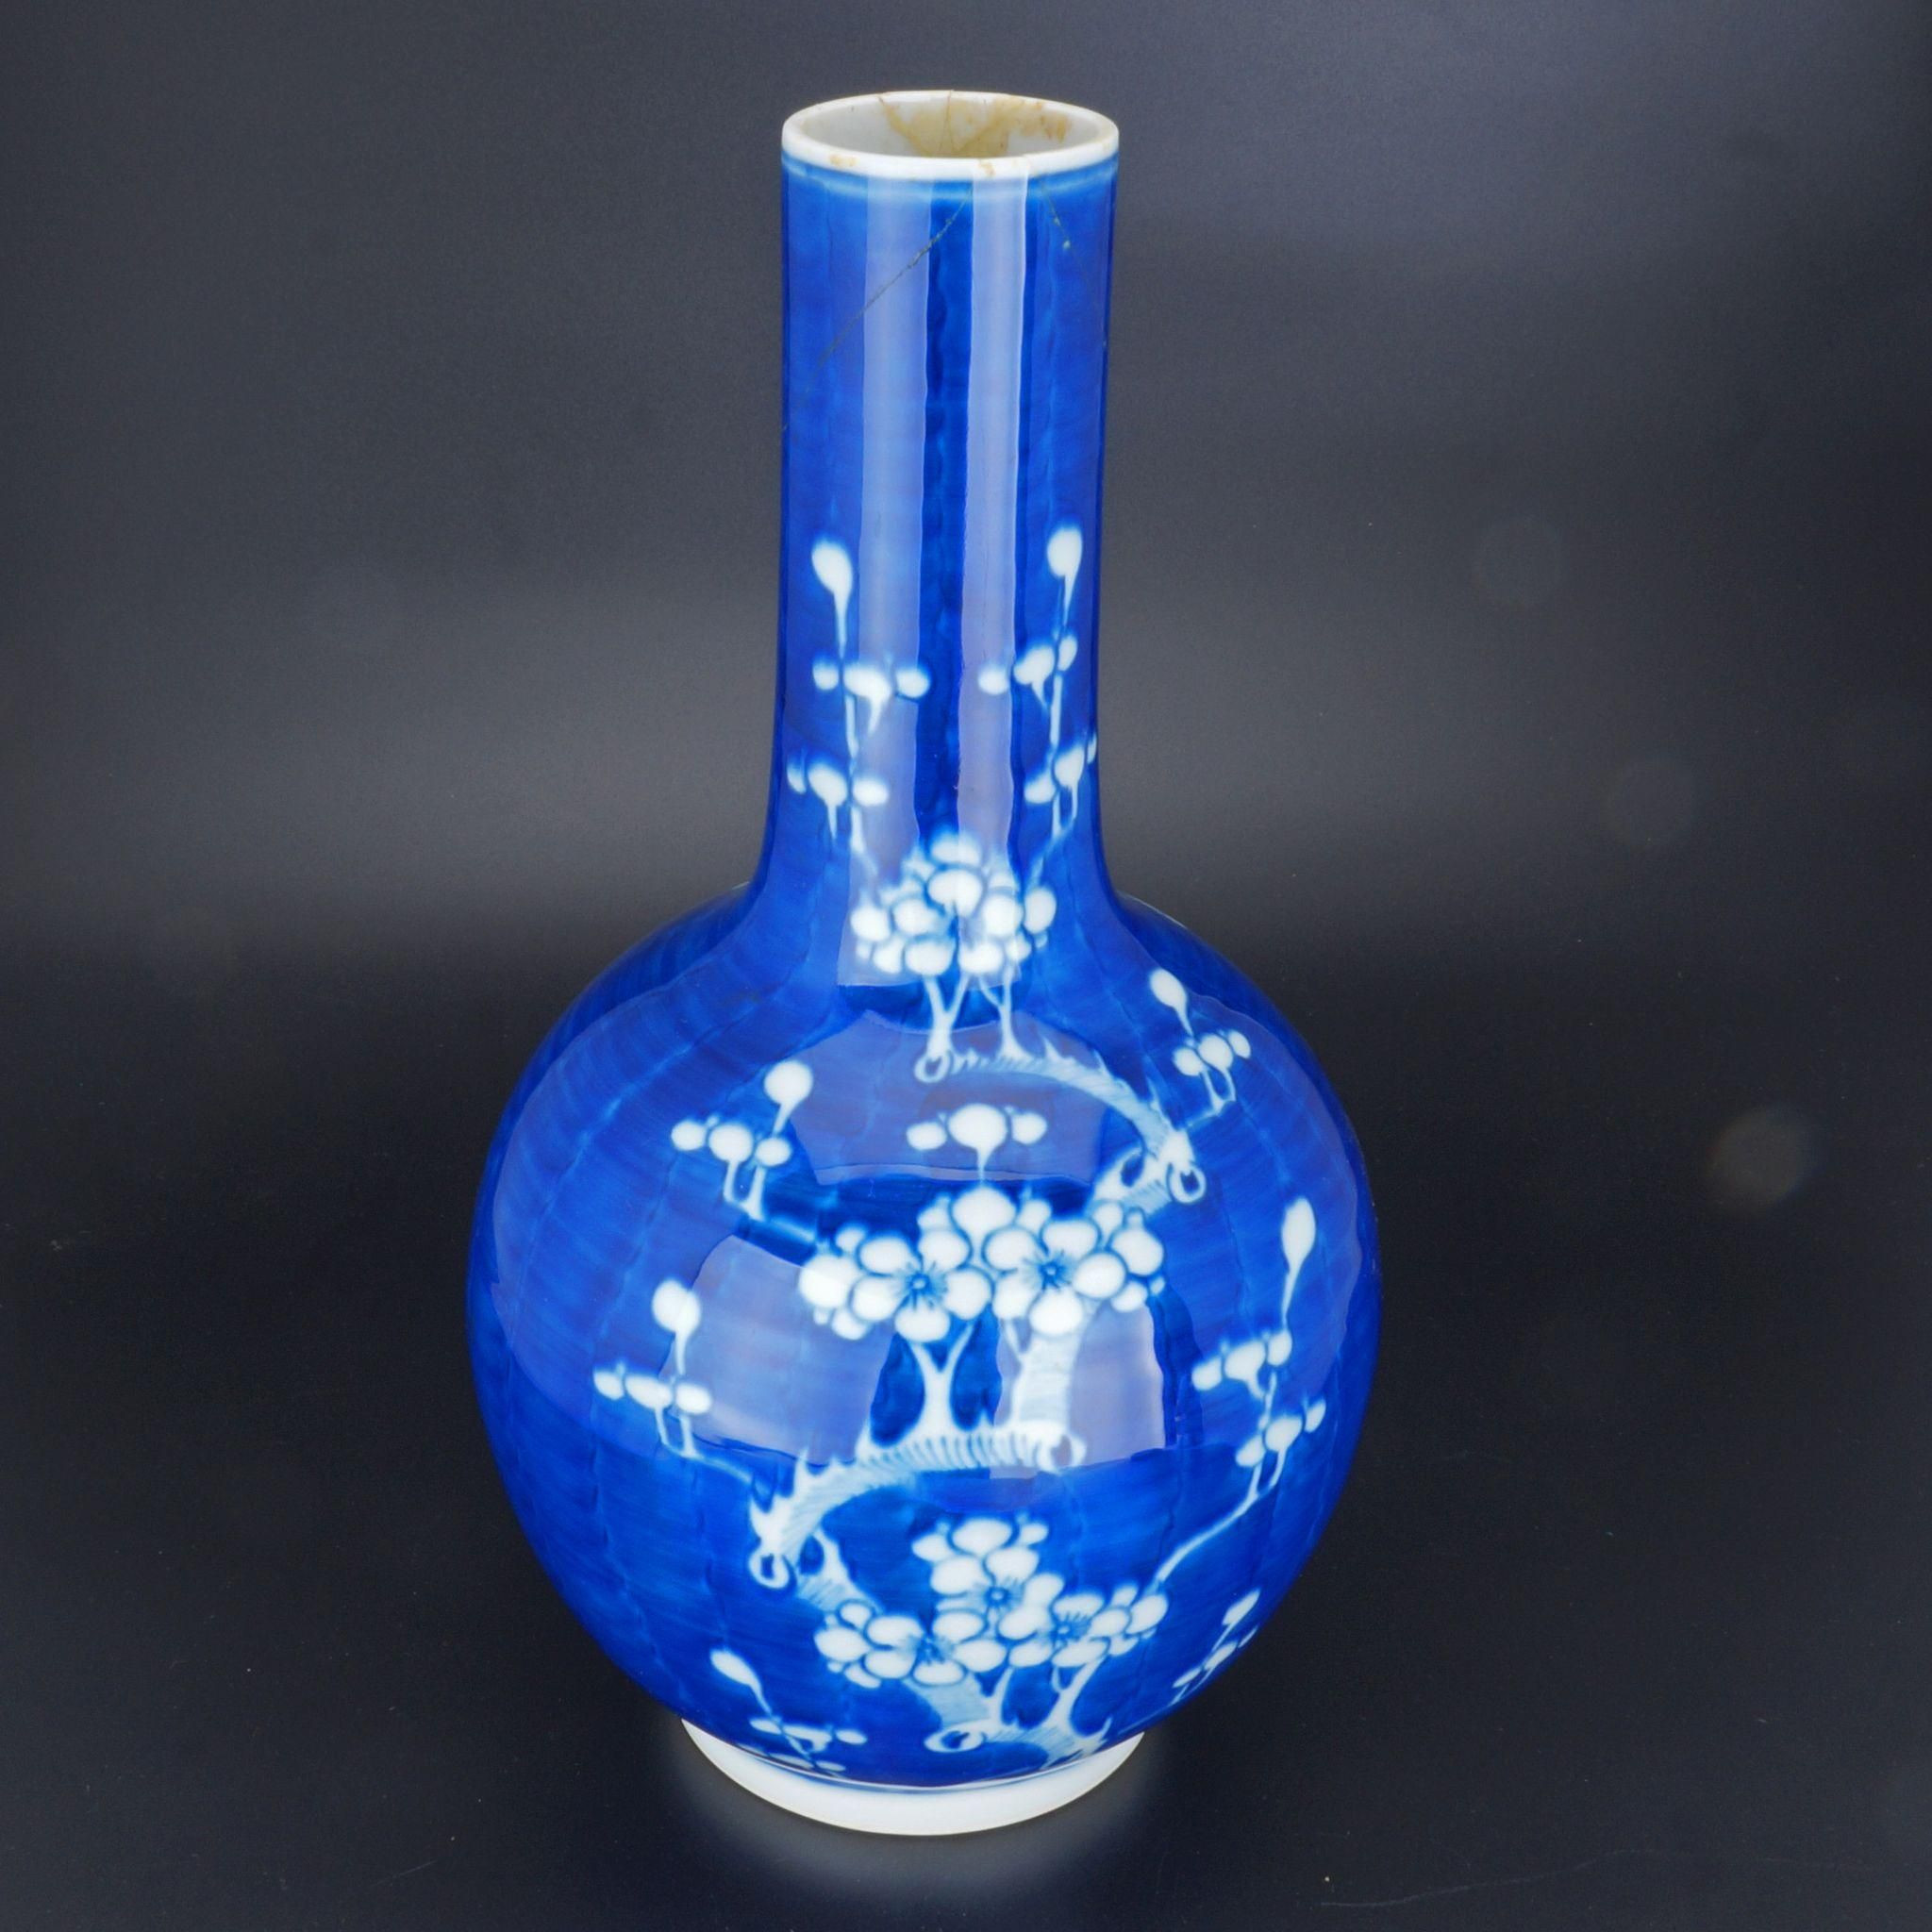 Chinese Lacquer Vase Of Large Chinese Blue and White Prunus Match Stick Vase Circa 1900 Pertaining to Large Chinese Blue and White Prunus Match Stick Vase Circa 1900